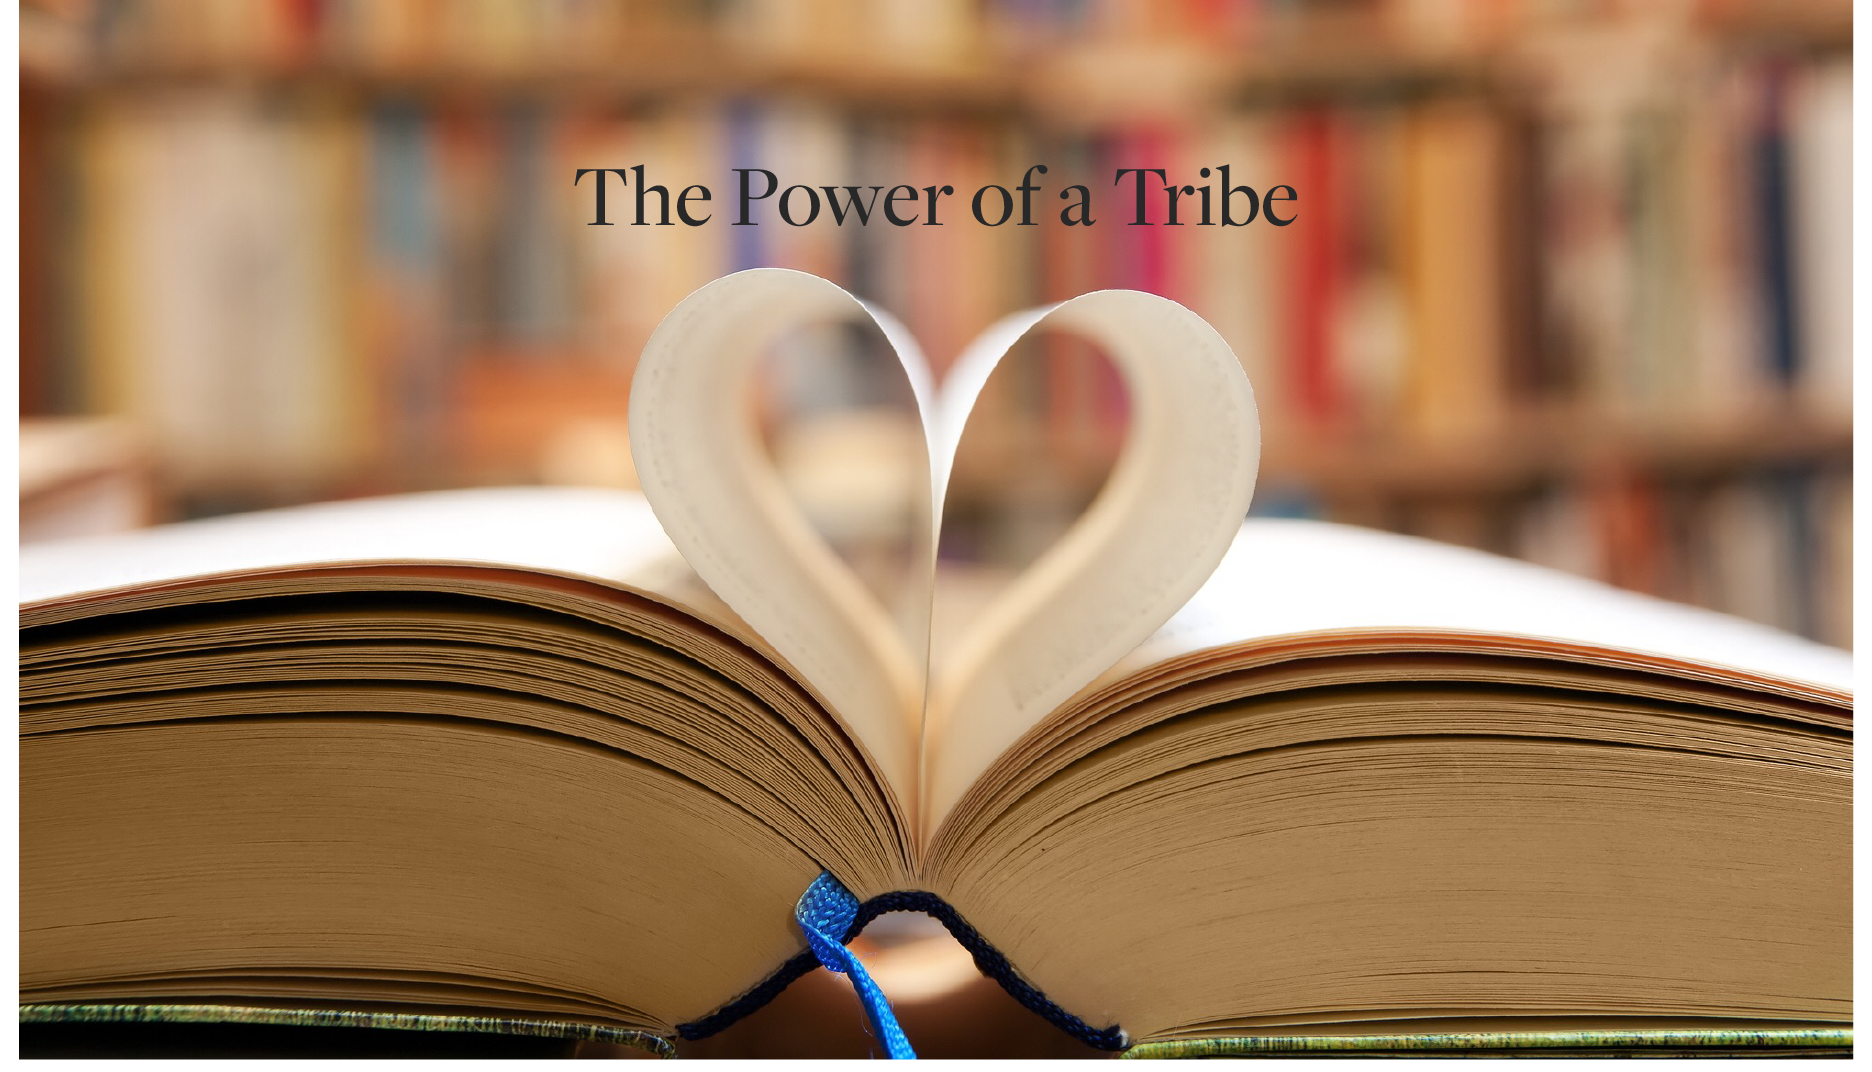 The Power of a Tribe